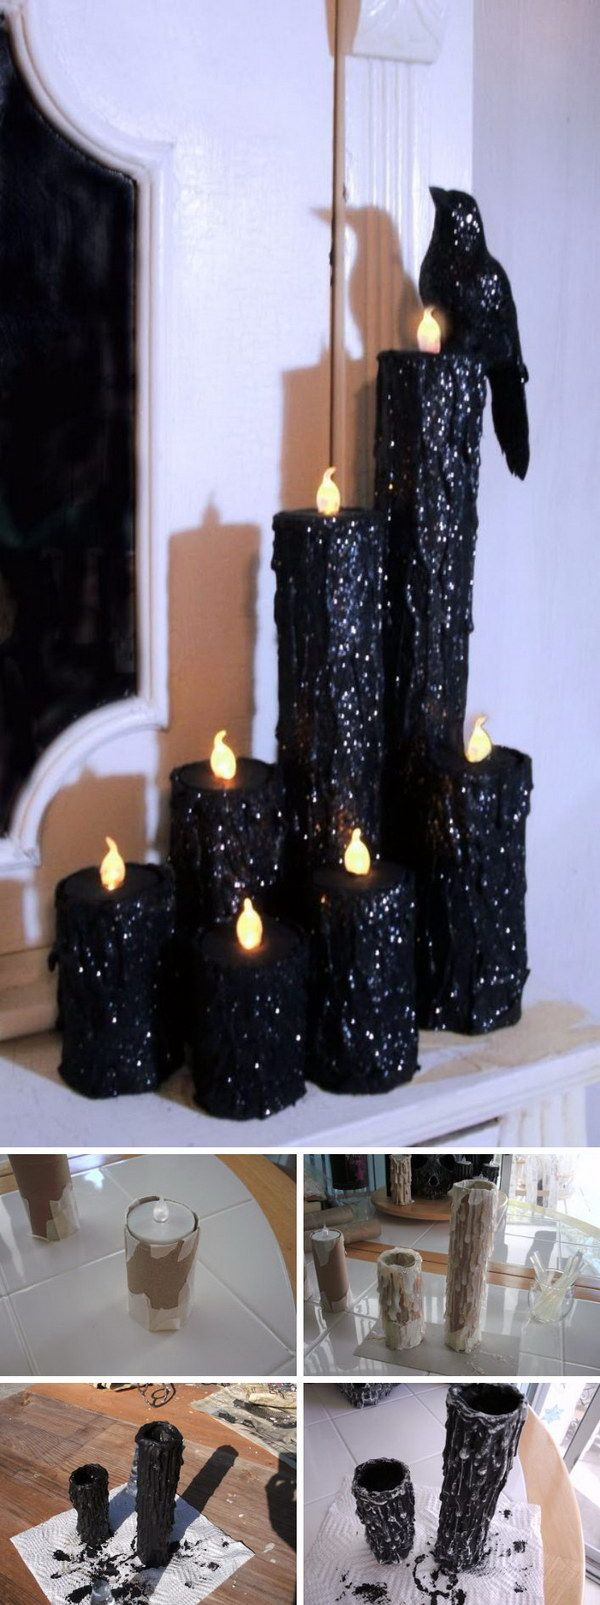 DIY Halloween Creepy Candles. Paper towel rolls, hot glue, battery tea lights, paint, glitter… I can see this tailored for